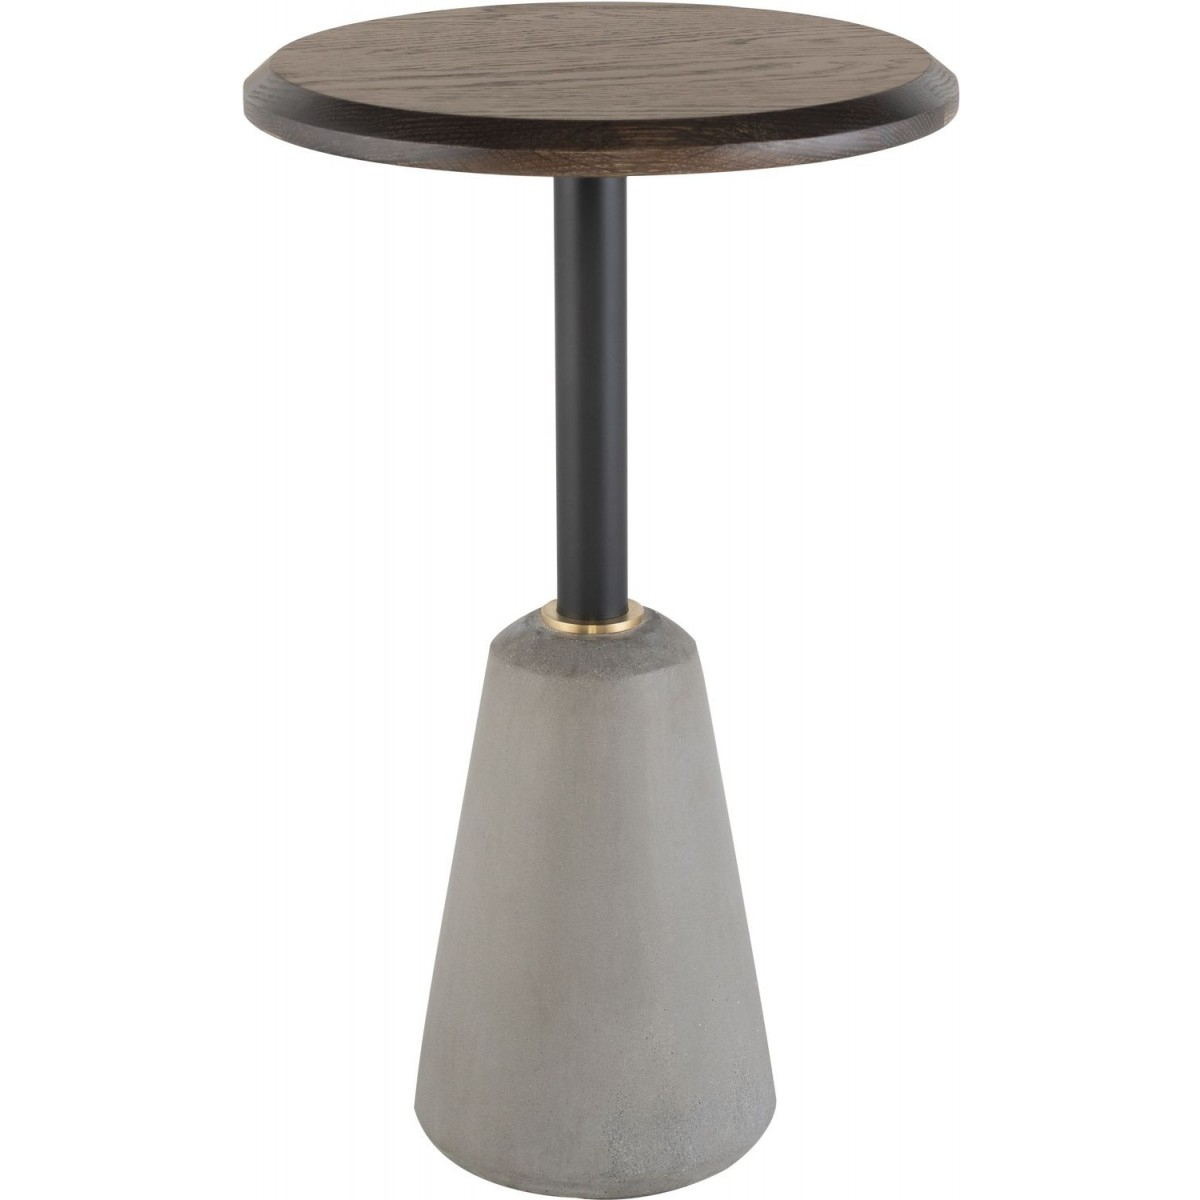 Nuevo Furniture Exeter Side Table – Hgda588 Pertaining To Exeter Side Chairs (View 15 of 15)